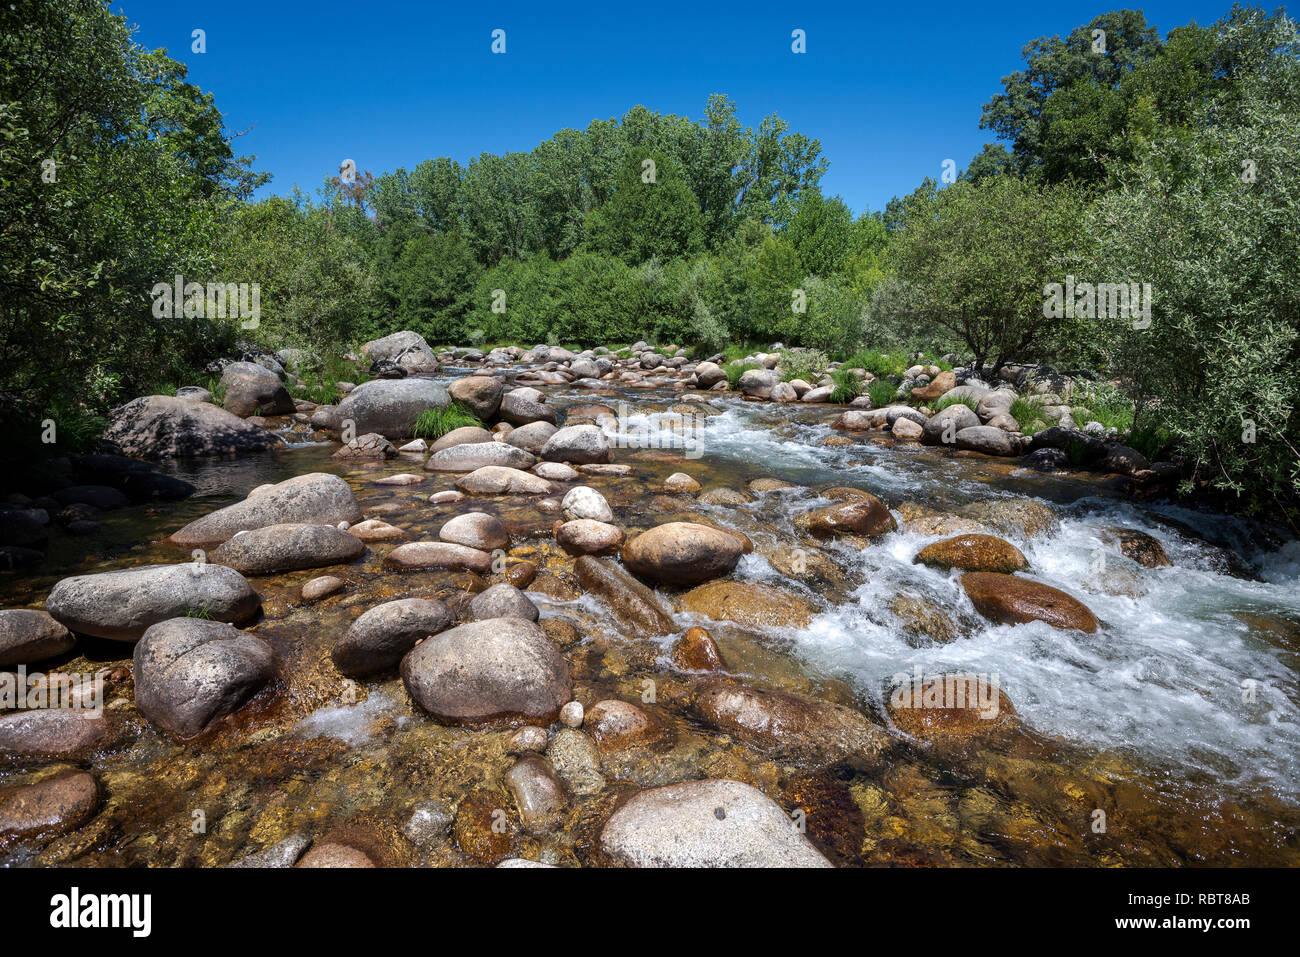 Views of the Minchones Stream, in the region of La Vera, Caceres, Extremadura, Spain Stock Photo